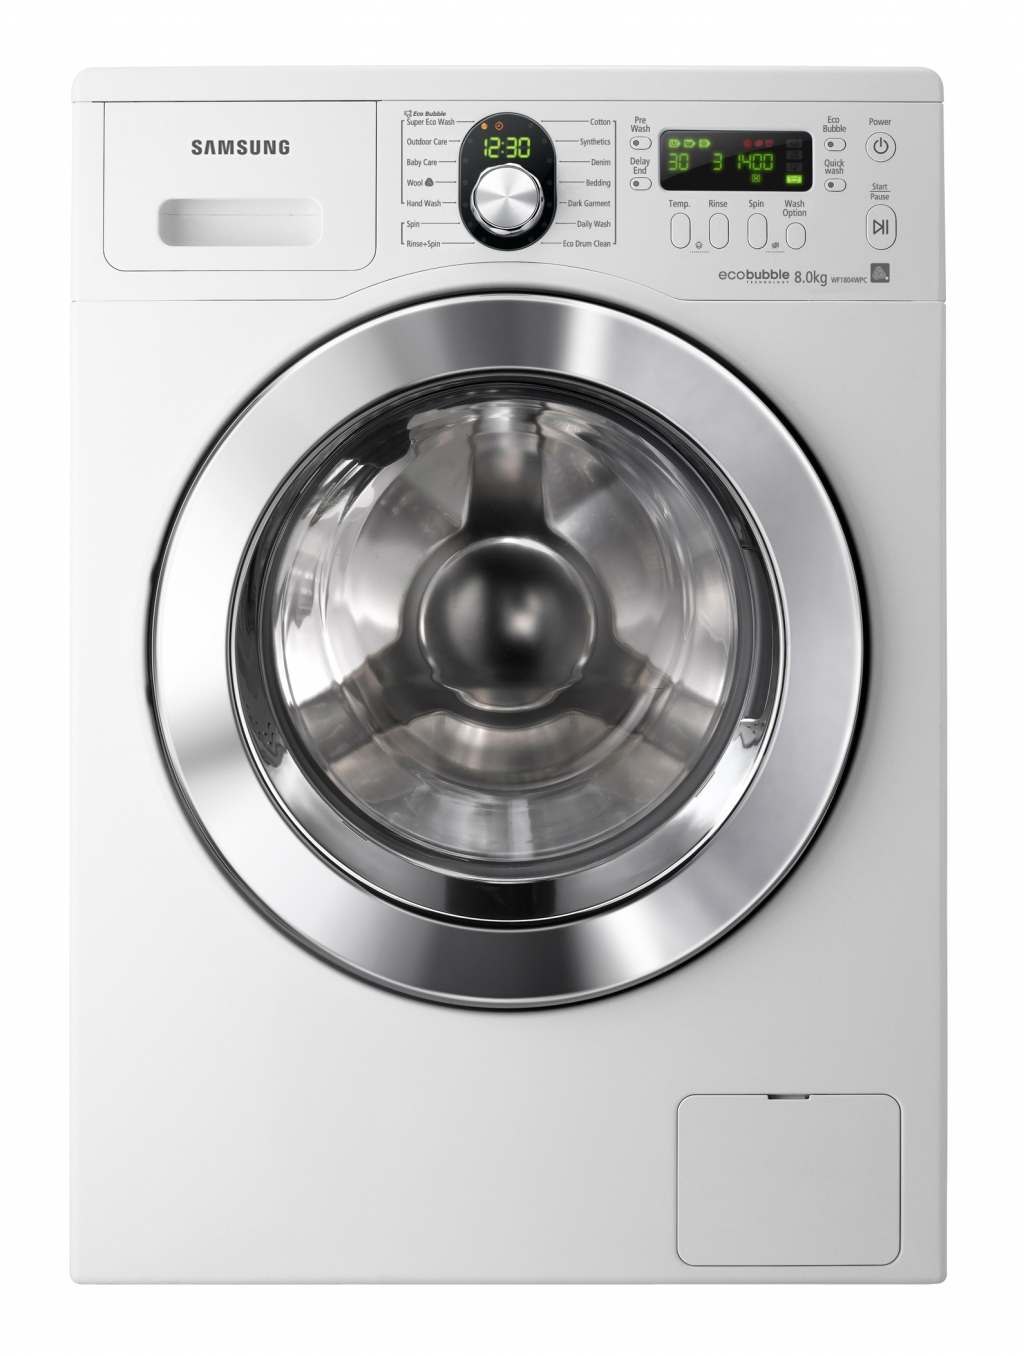 Samsung Drum Washer Named No. 1 'What to Buy' in Australia